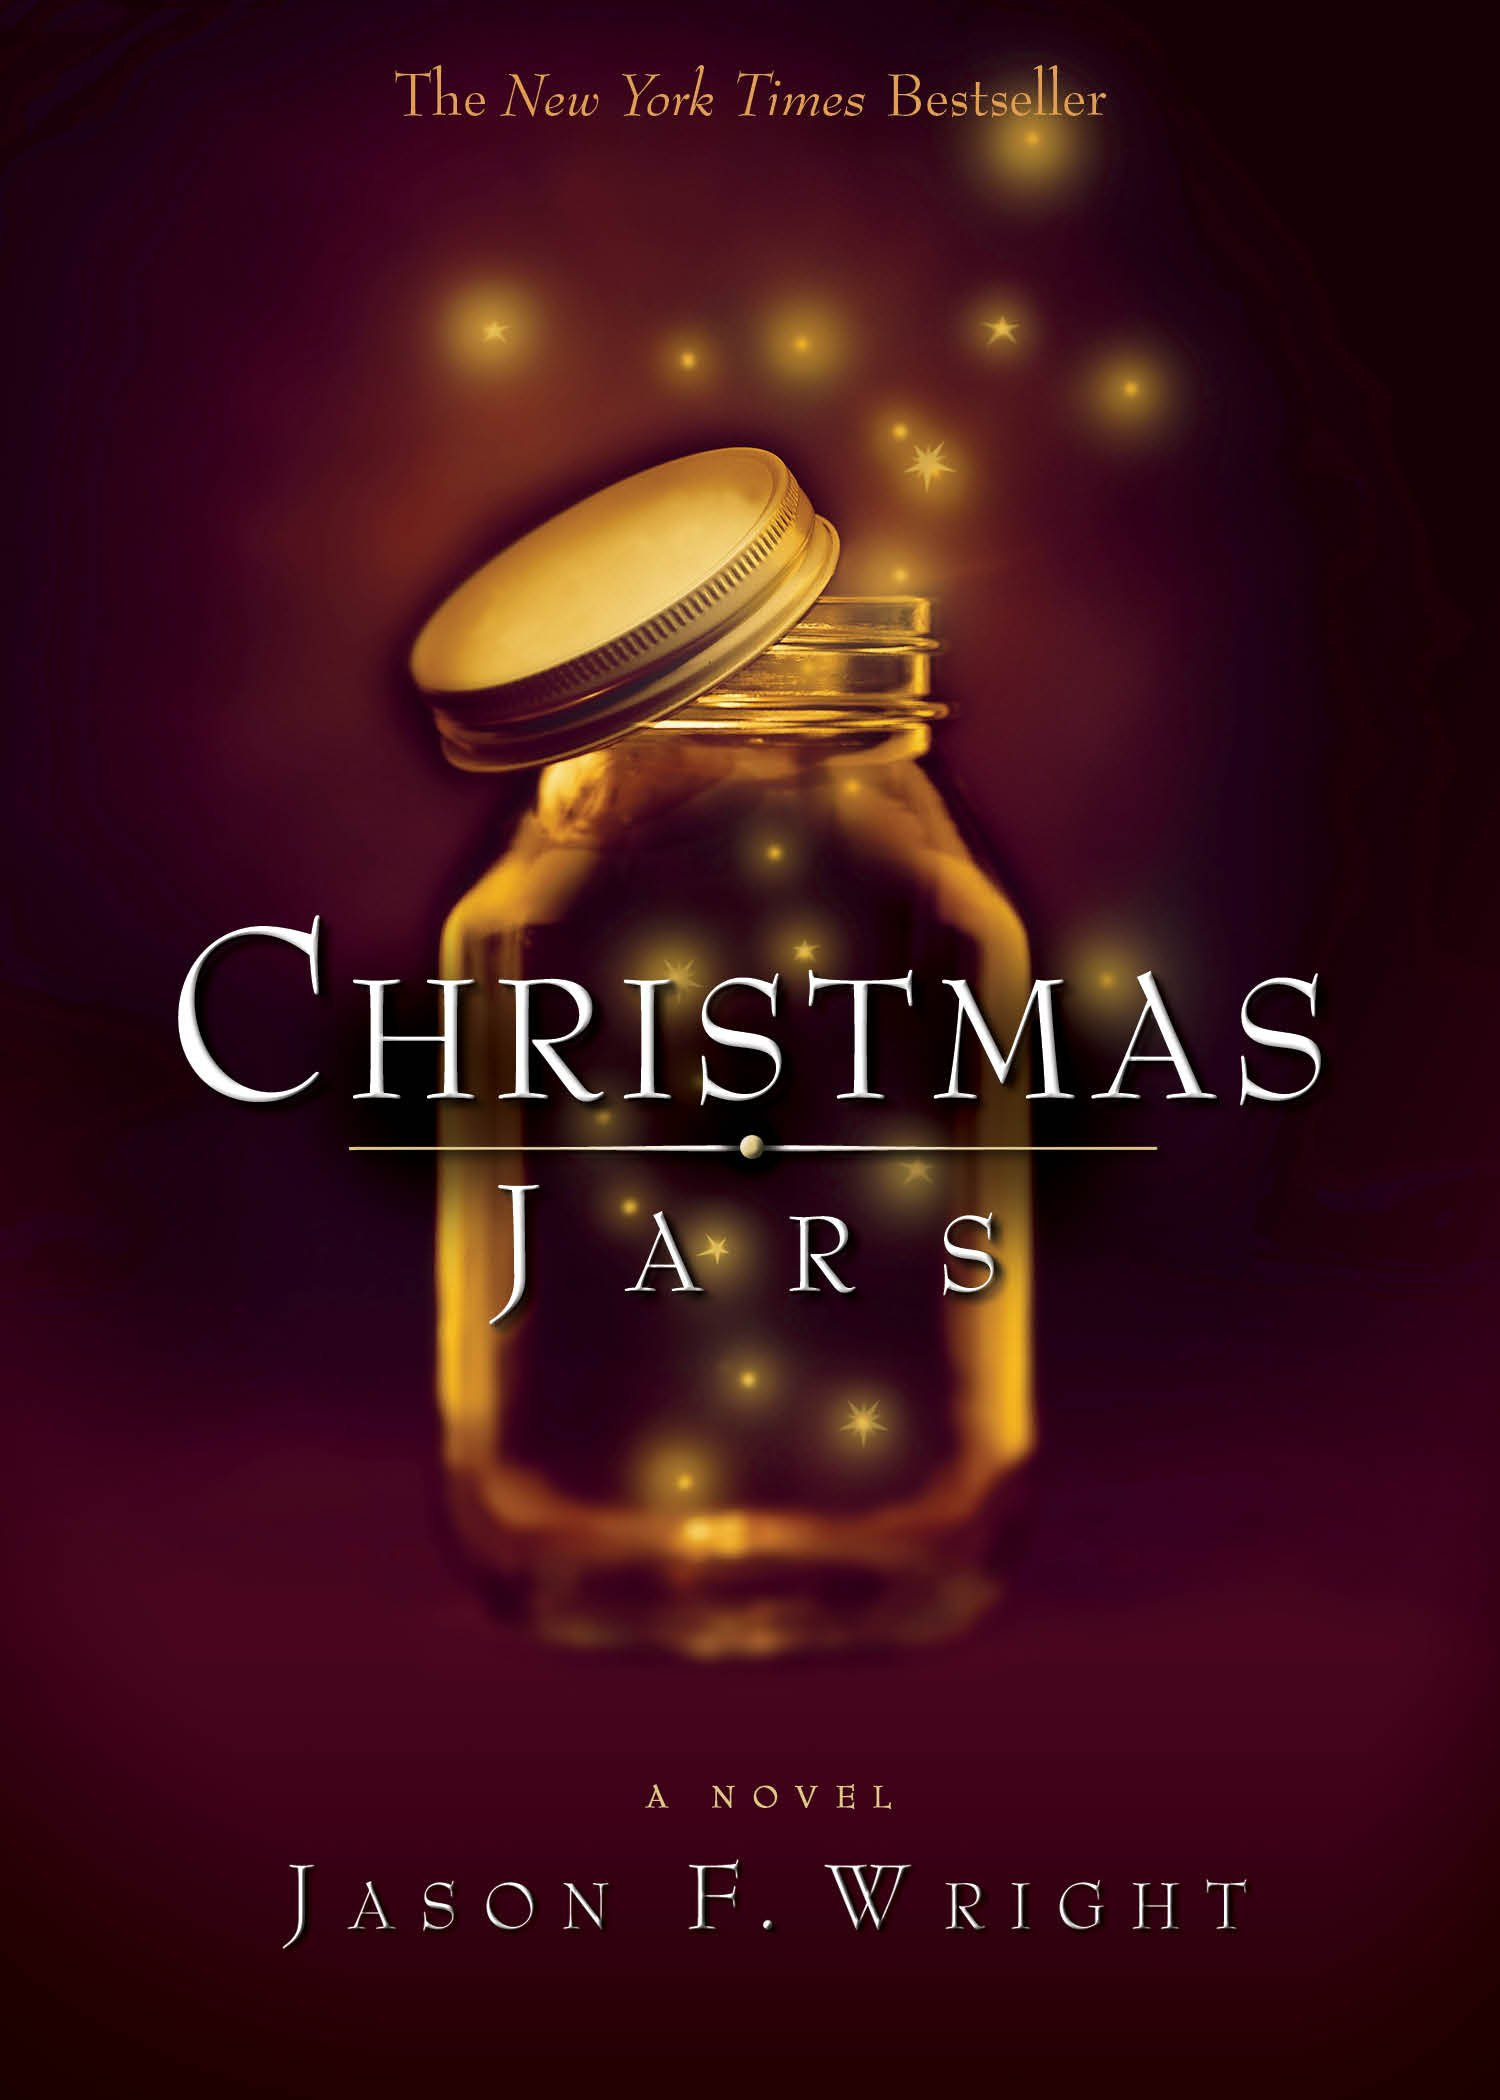 Christmas Jars Jason F Wright 9781590384817 Amazon.com Books